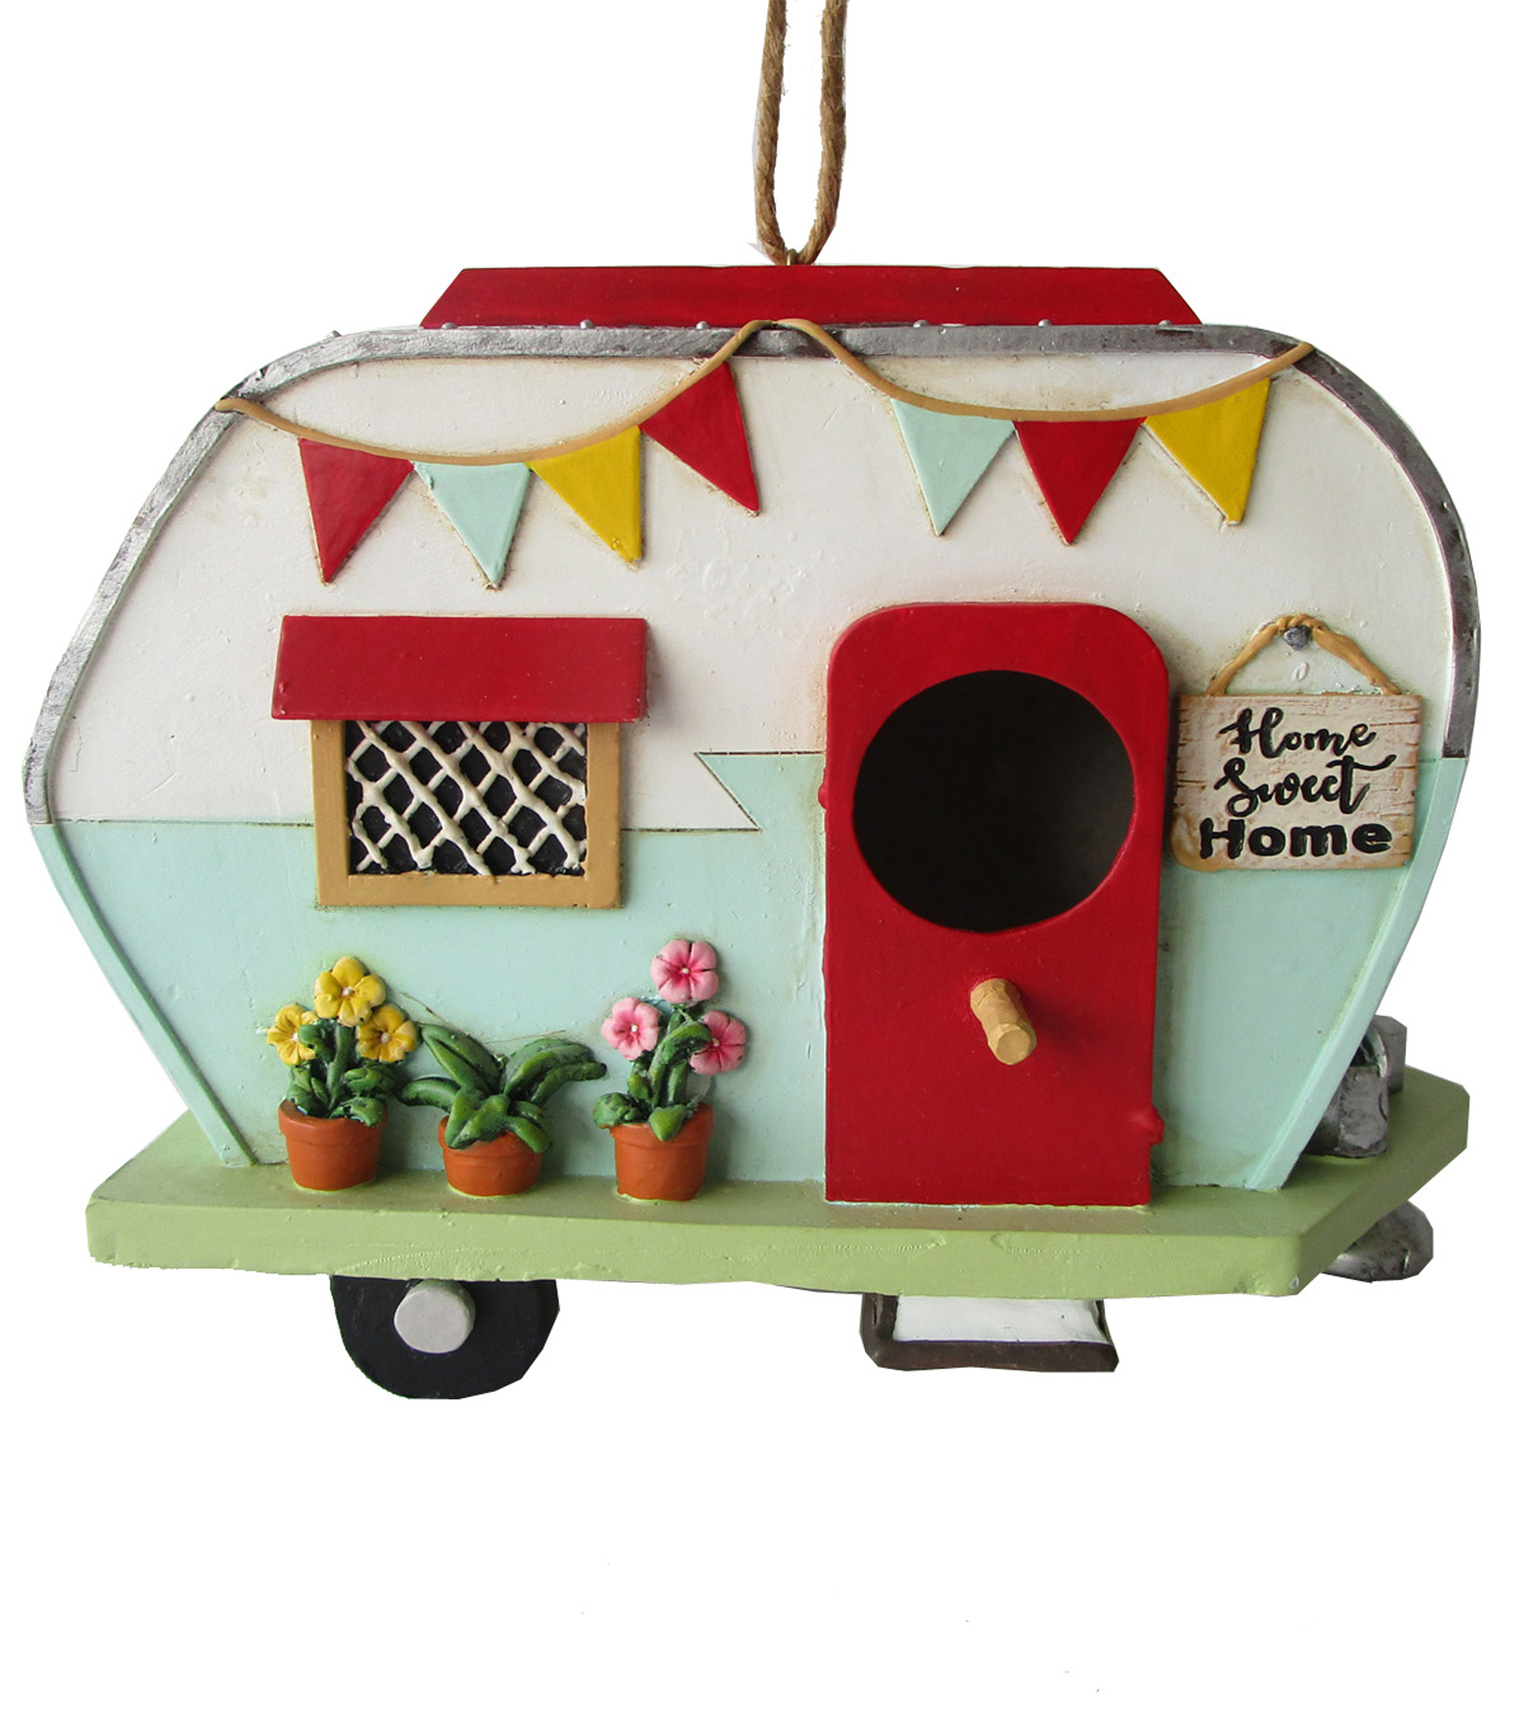 In the Garden Camper Bird House with Red Door-Home Sweet Home